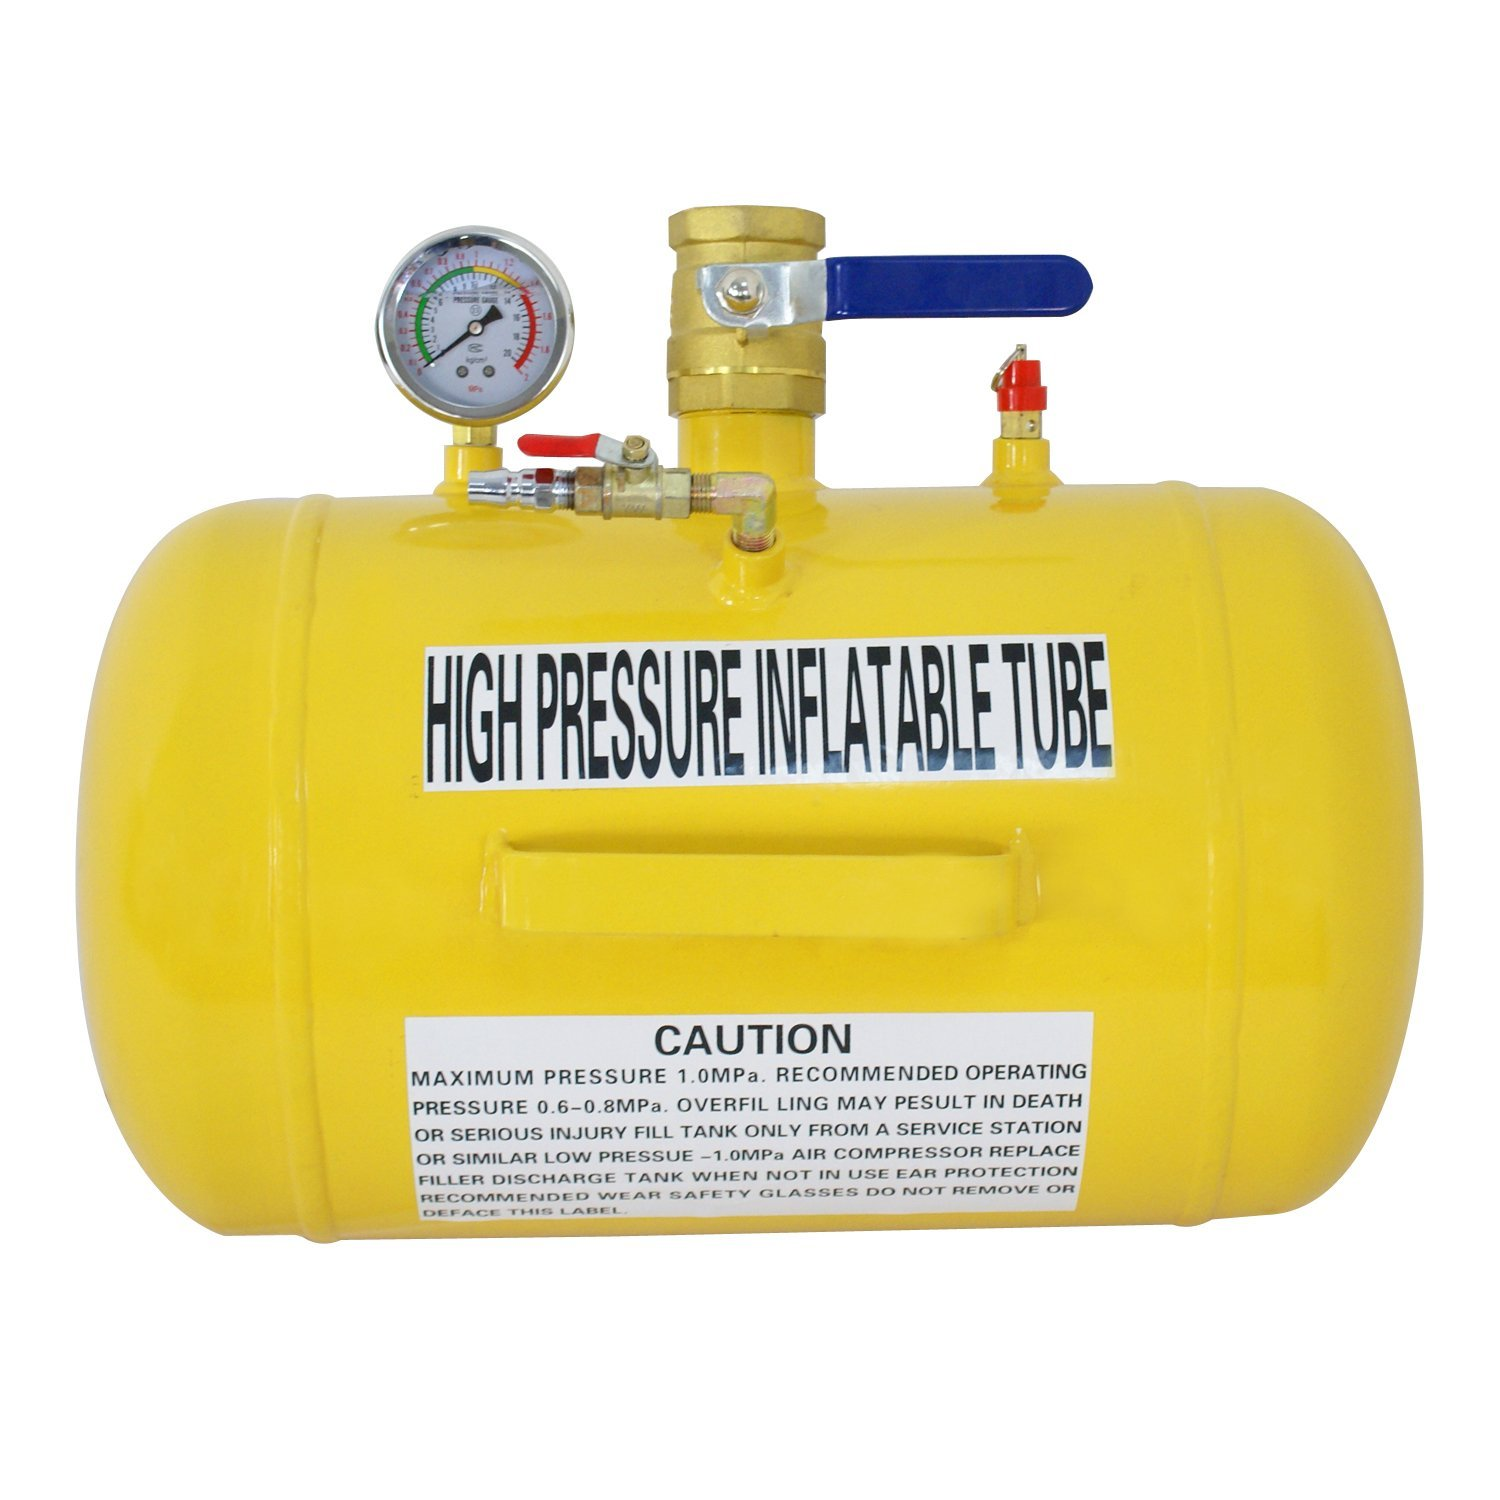 Sales Promotion At The End Of 2017 Tire Instant Inflator 5 Gallon